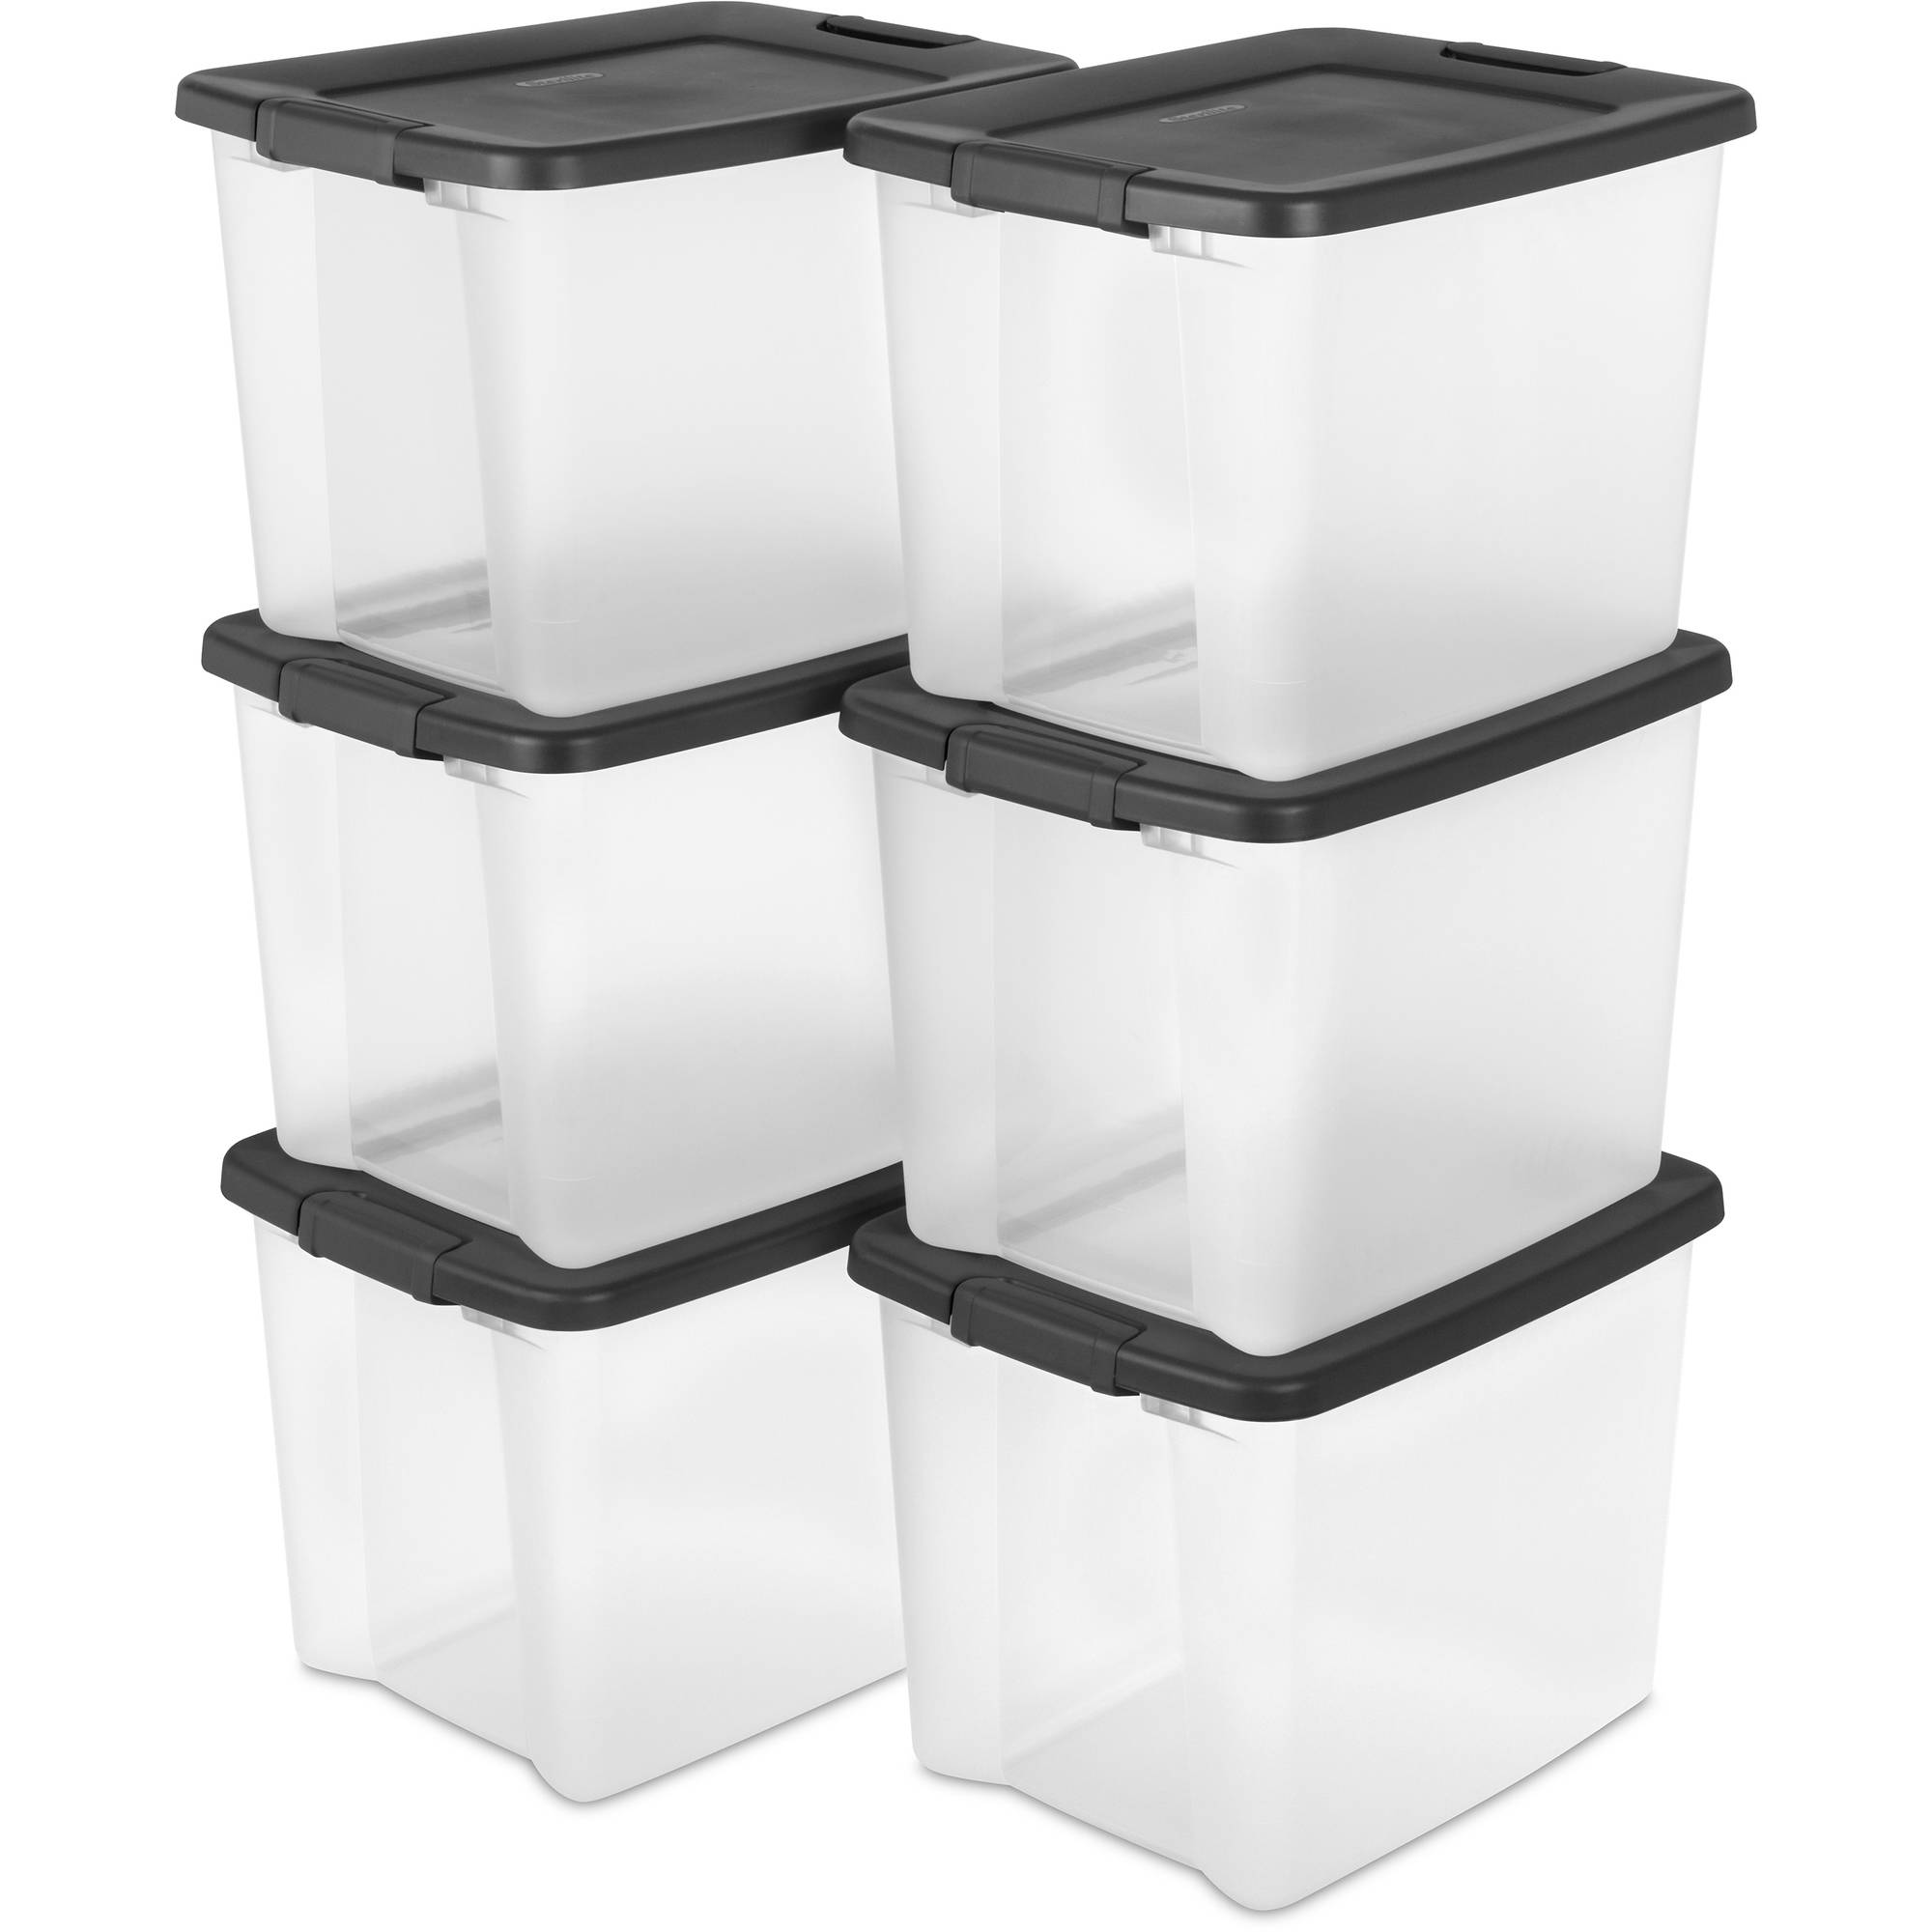 Sterilite 50 Quart ShelfTote, Gray, Case of 6